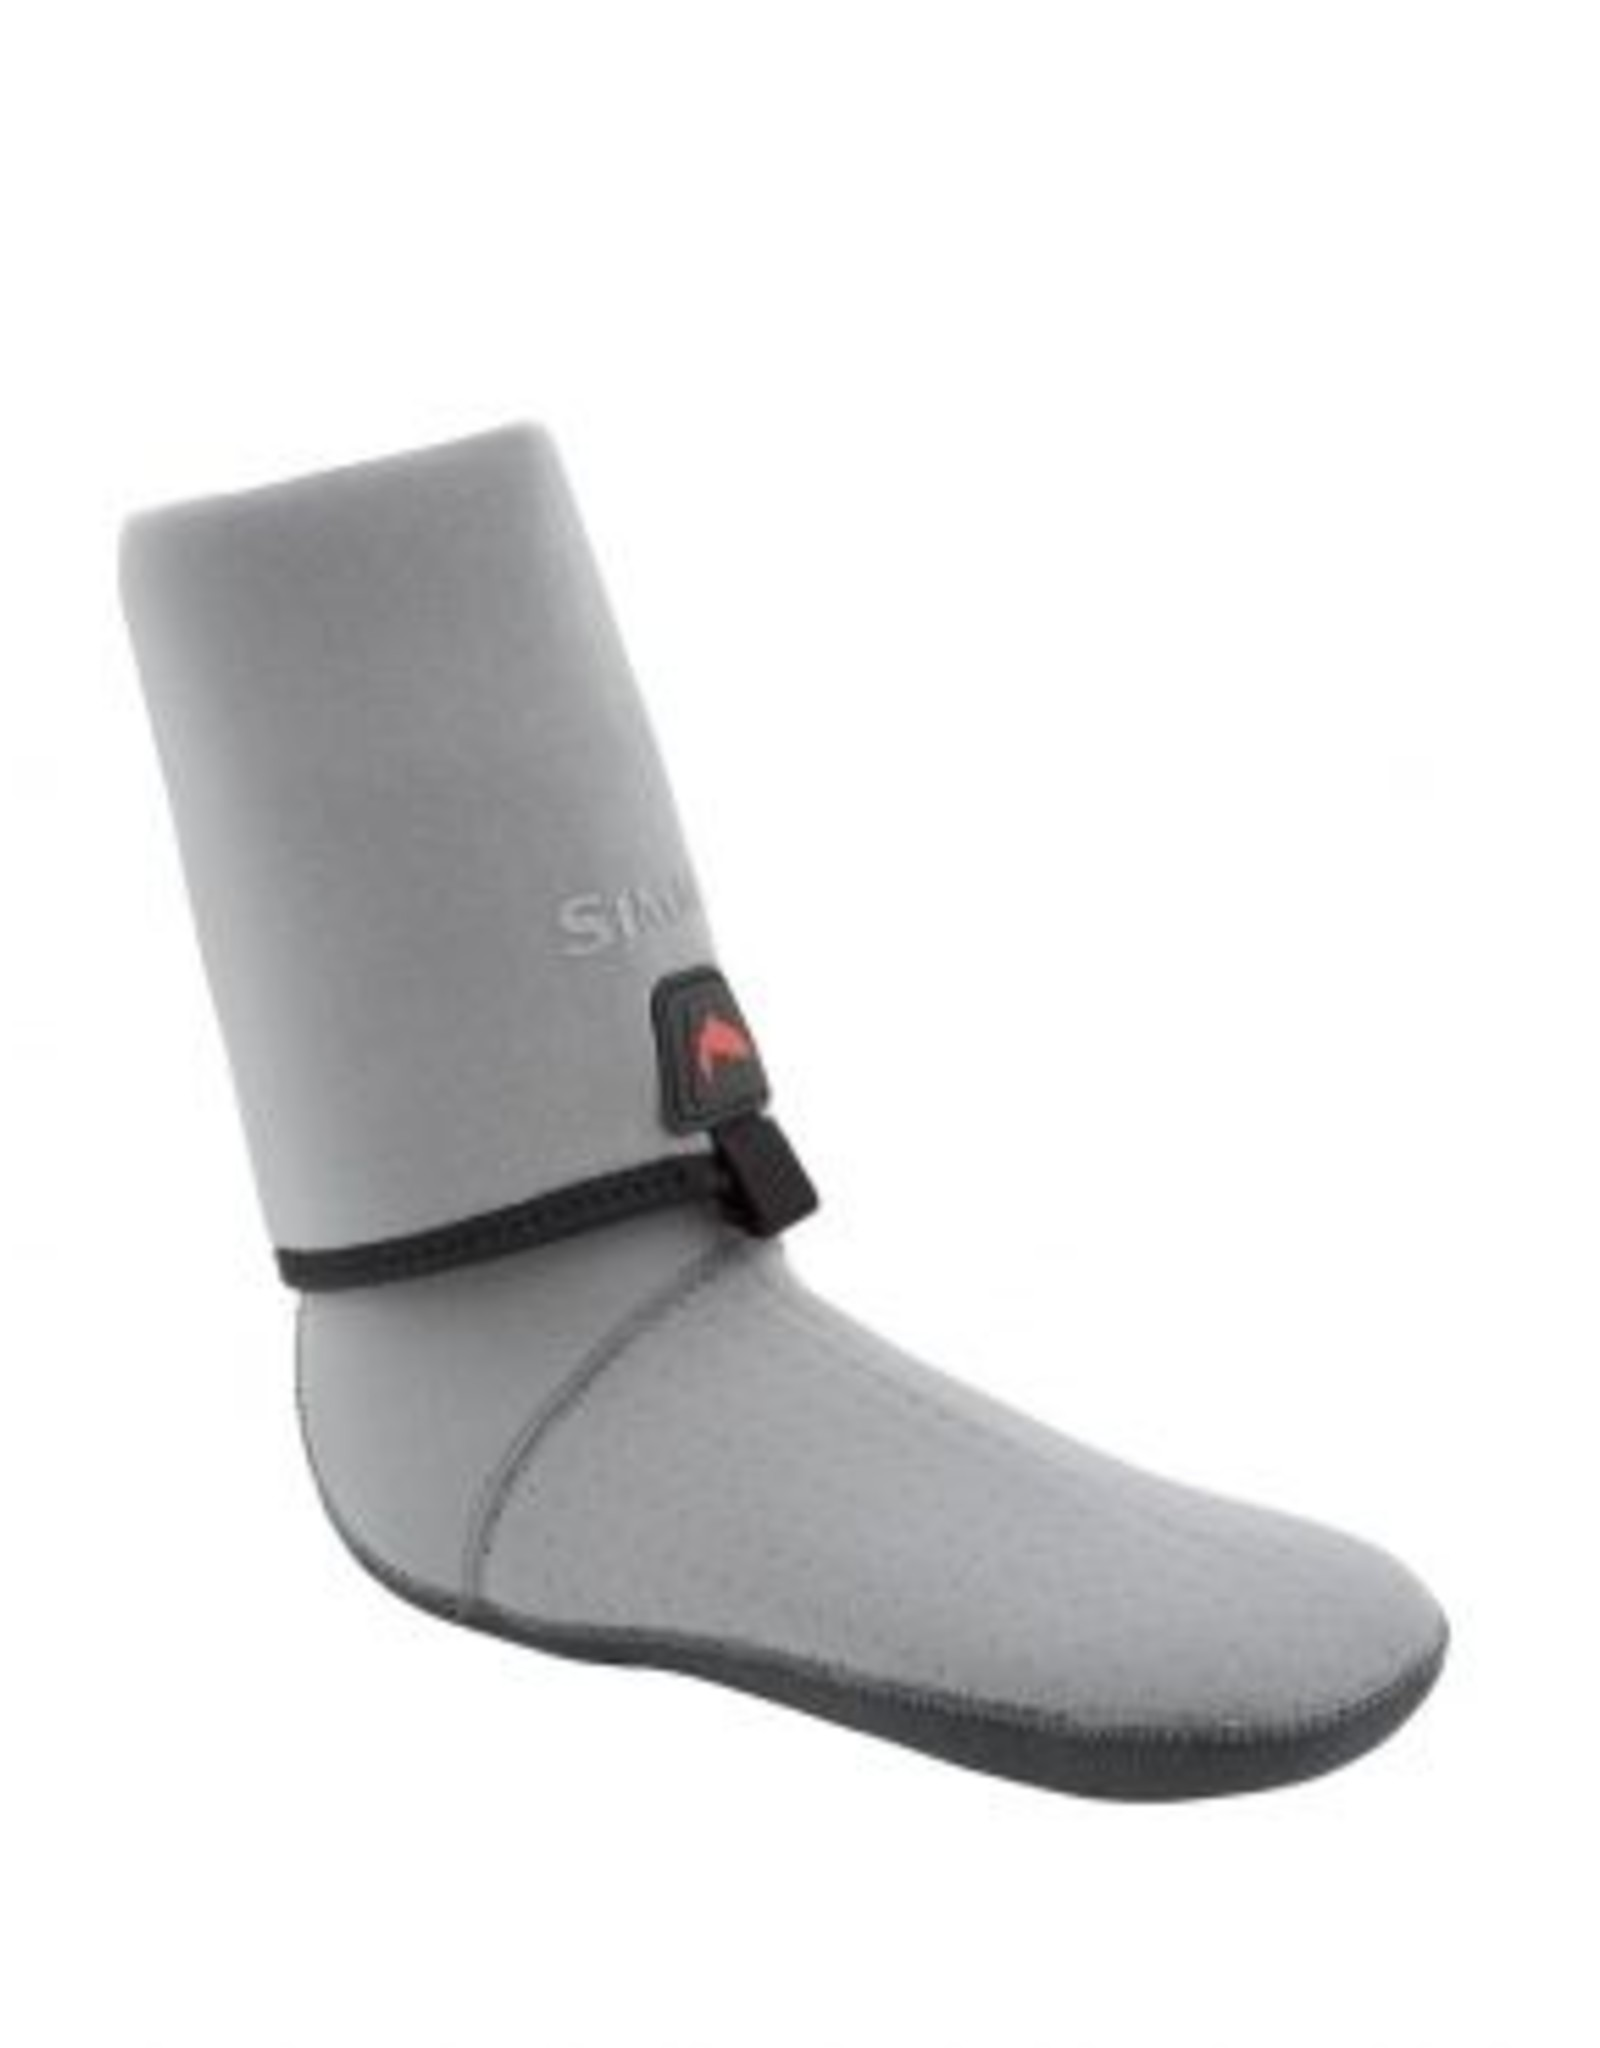 Simms Men's Guide Guard Socks